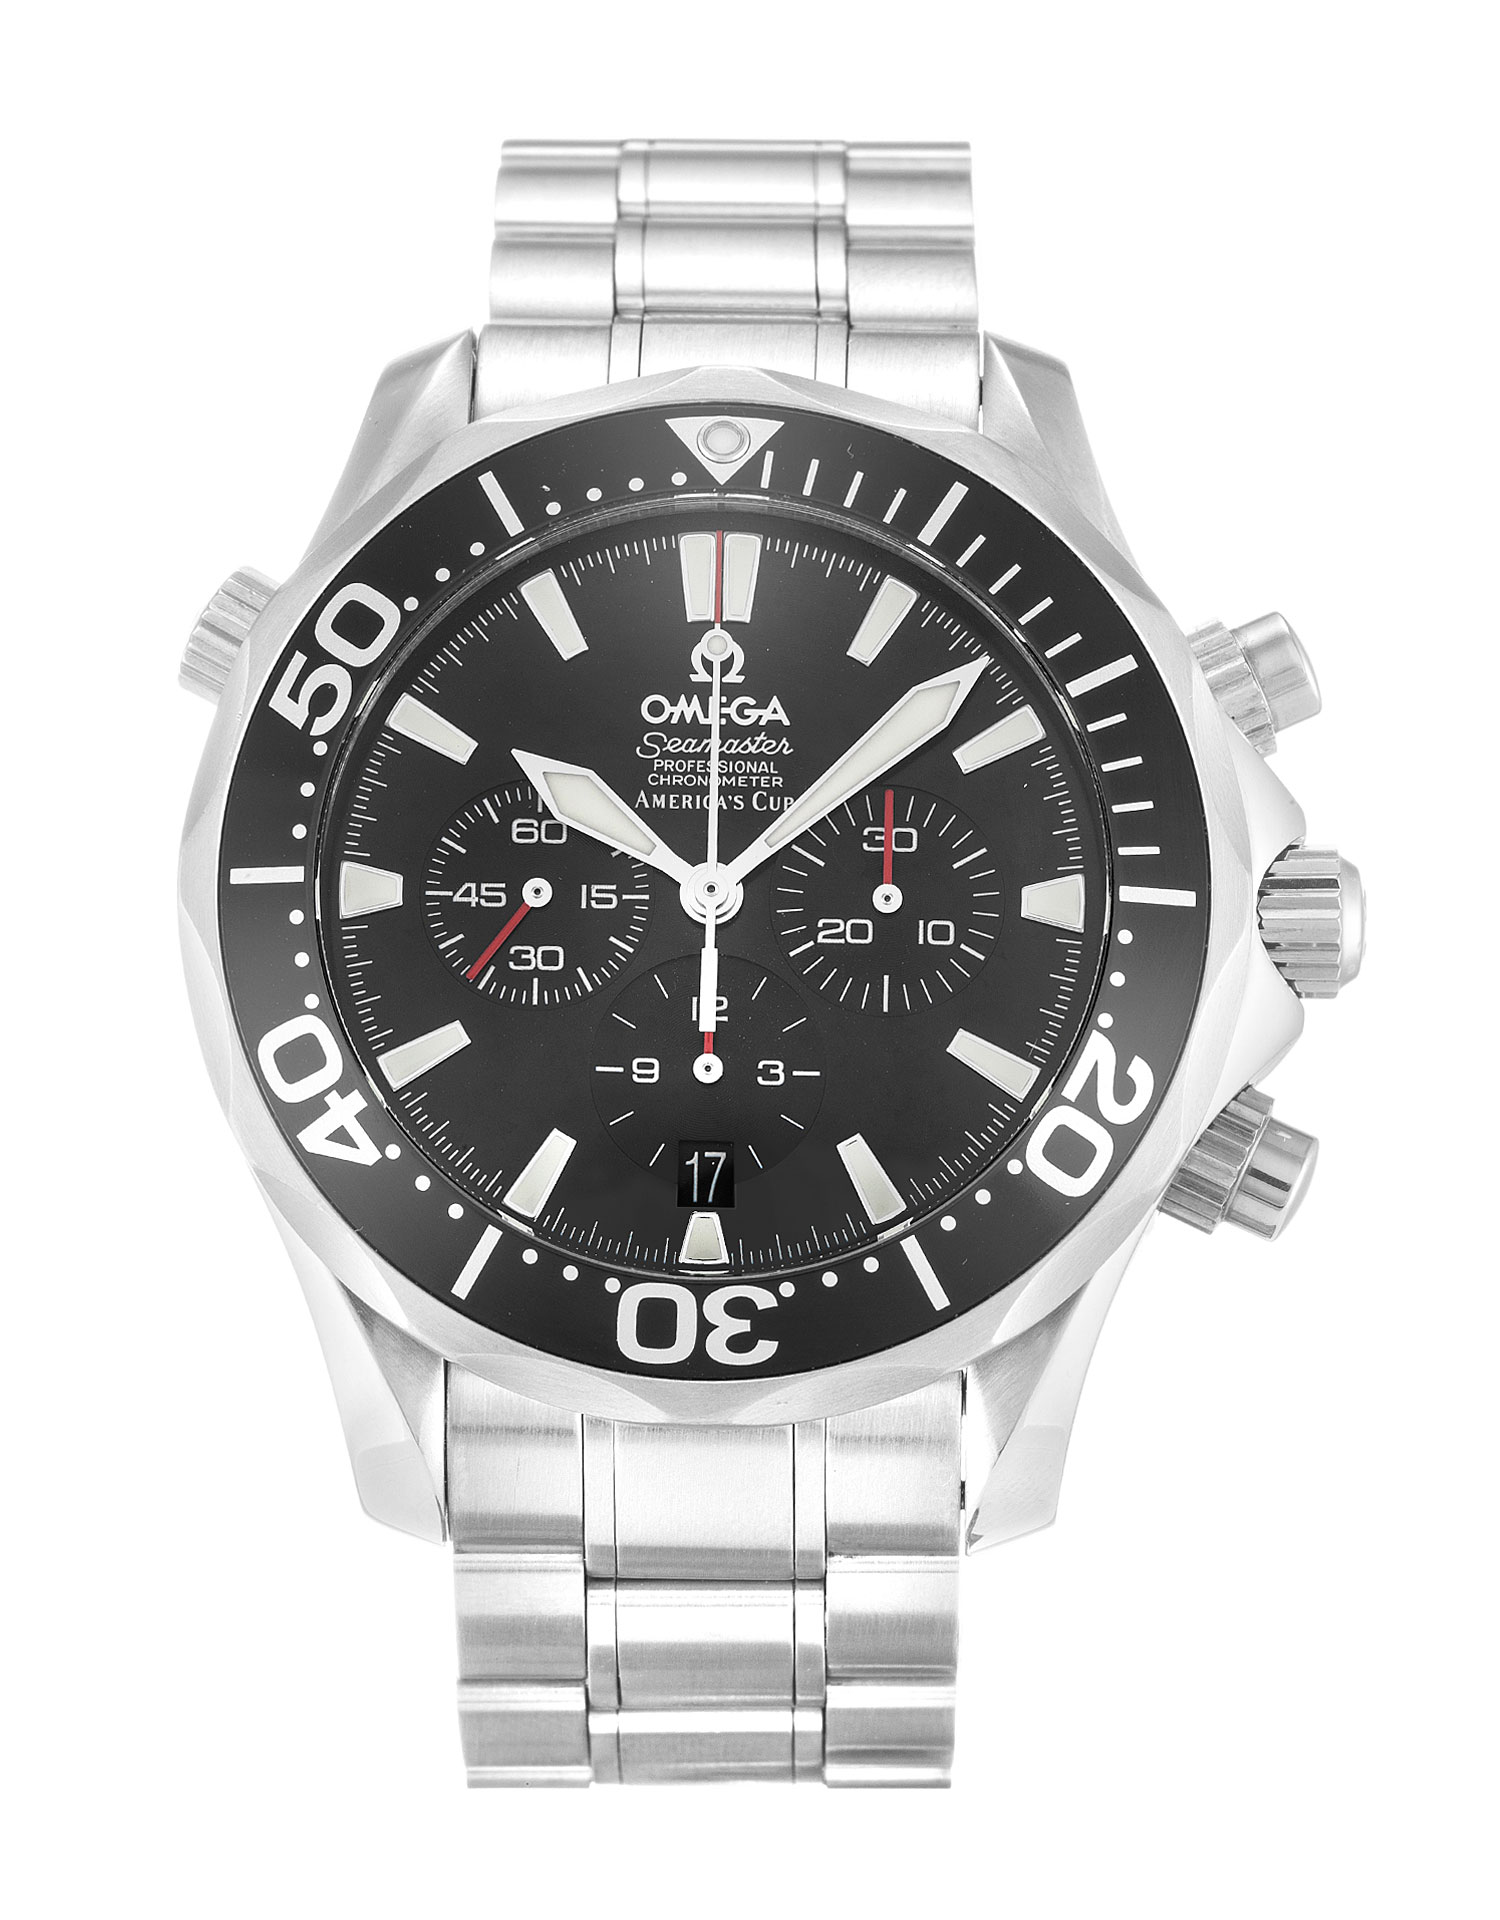 Omega Seamaster Americas Cup 2594.50.00 Mens 41.5 Mm Steel Case Automatic Movement – iapac.to